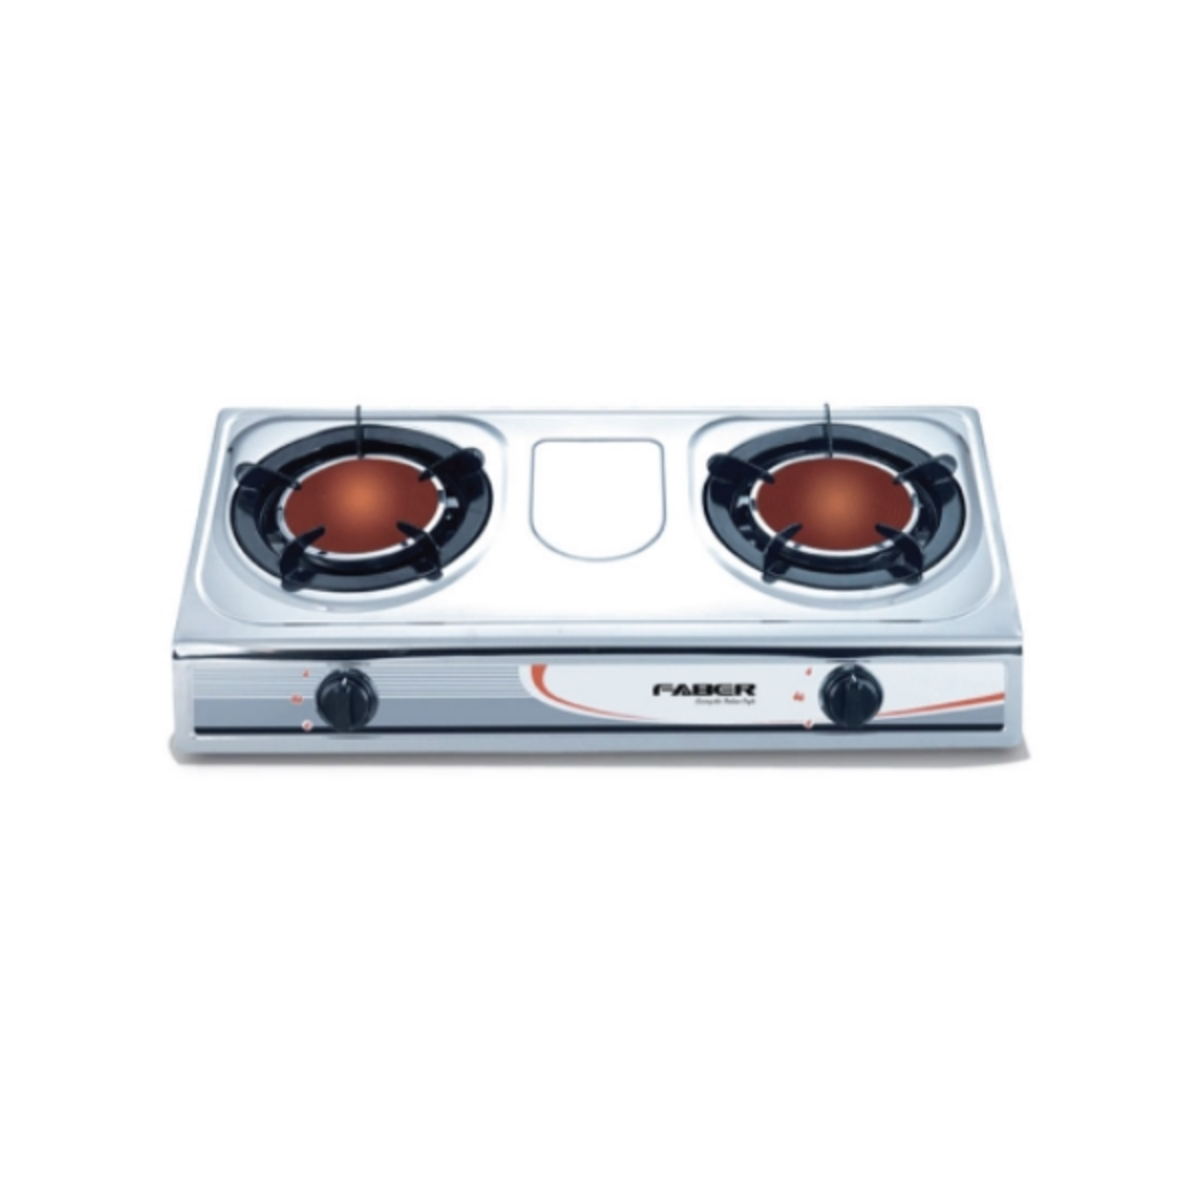 Faber Infrared Gas Cooker Fs5550